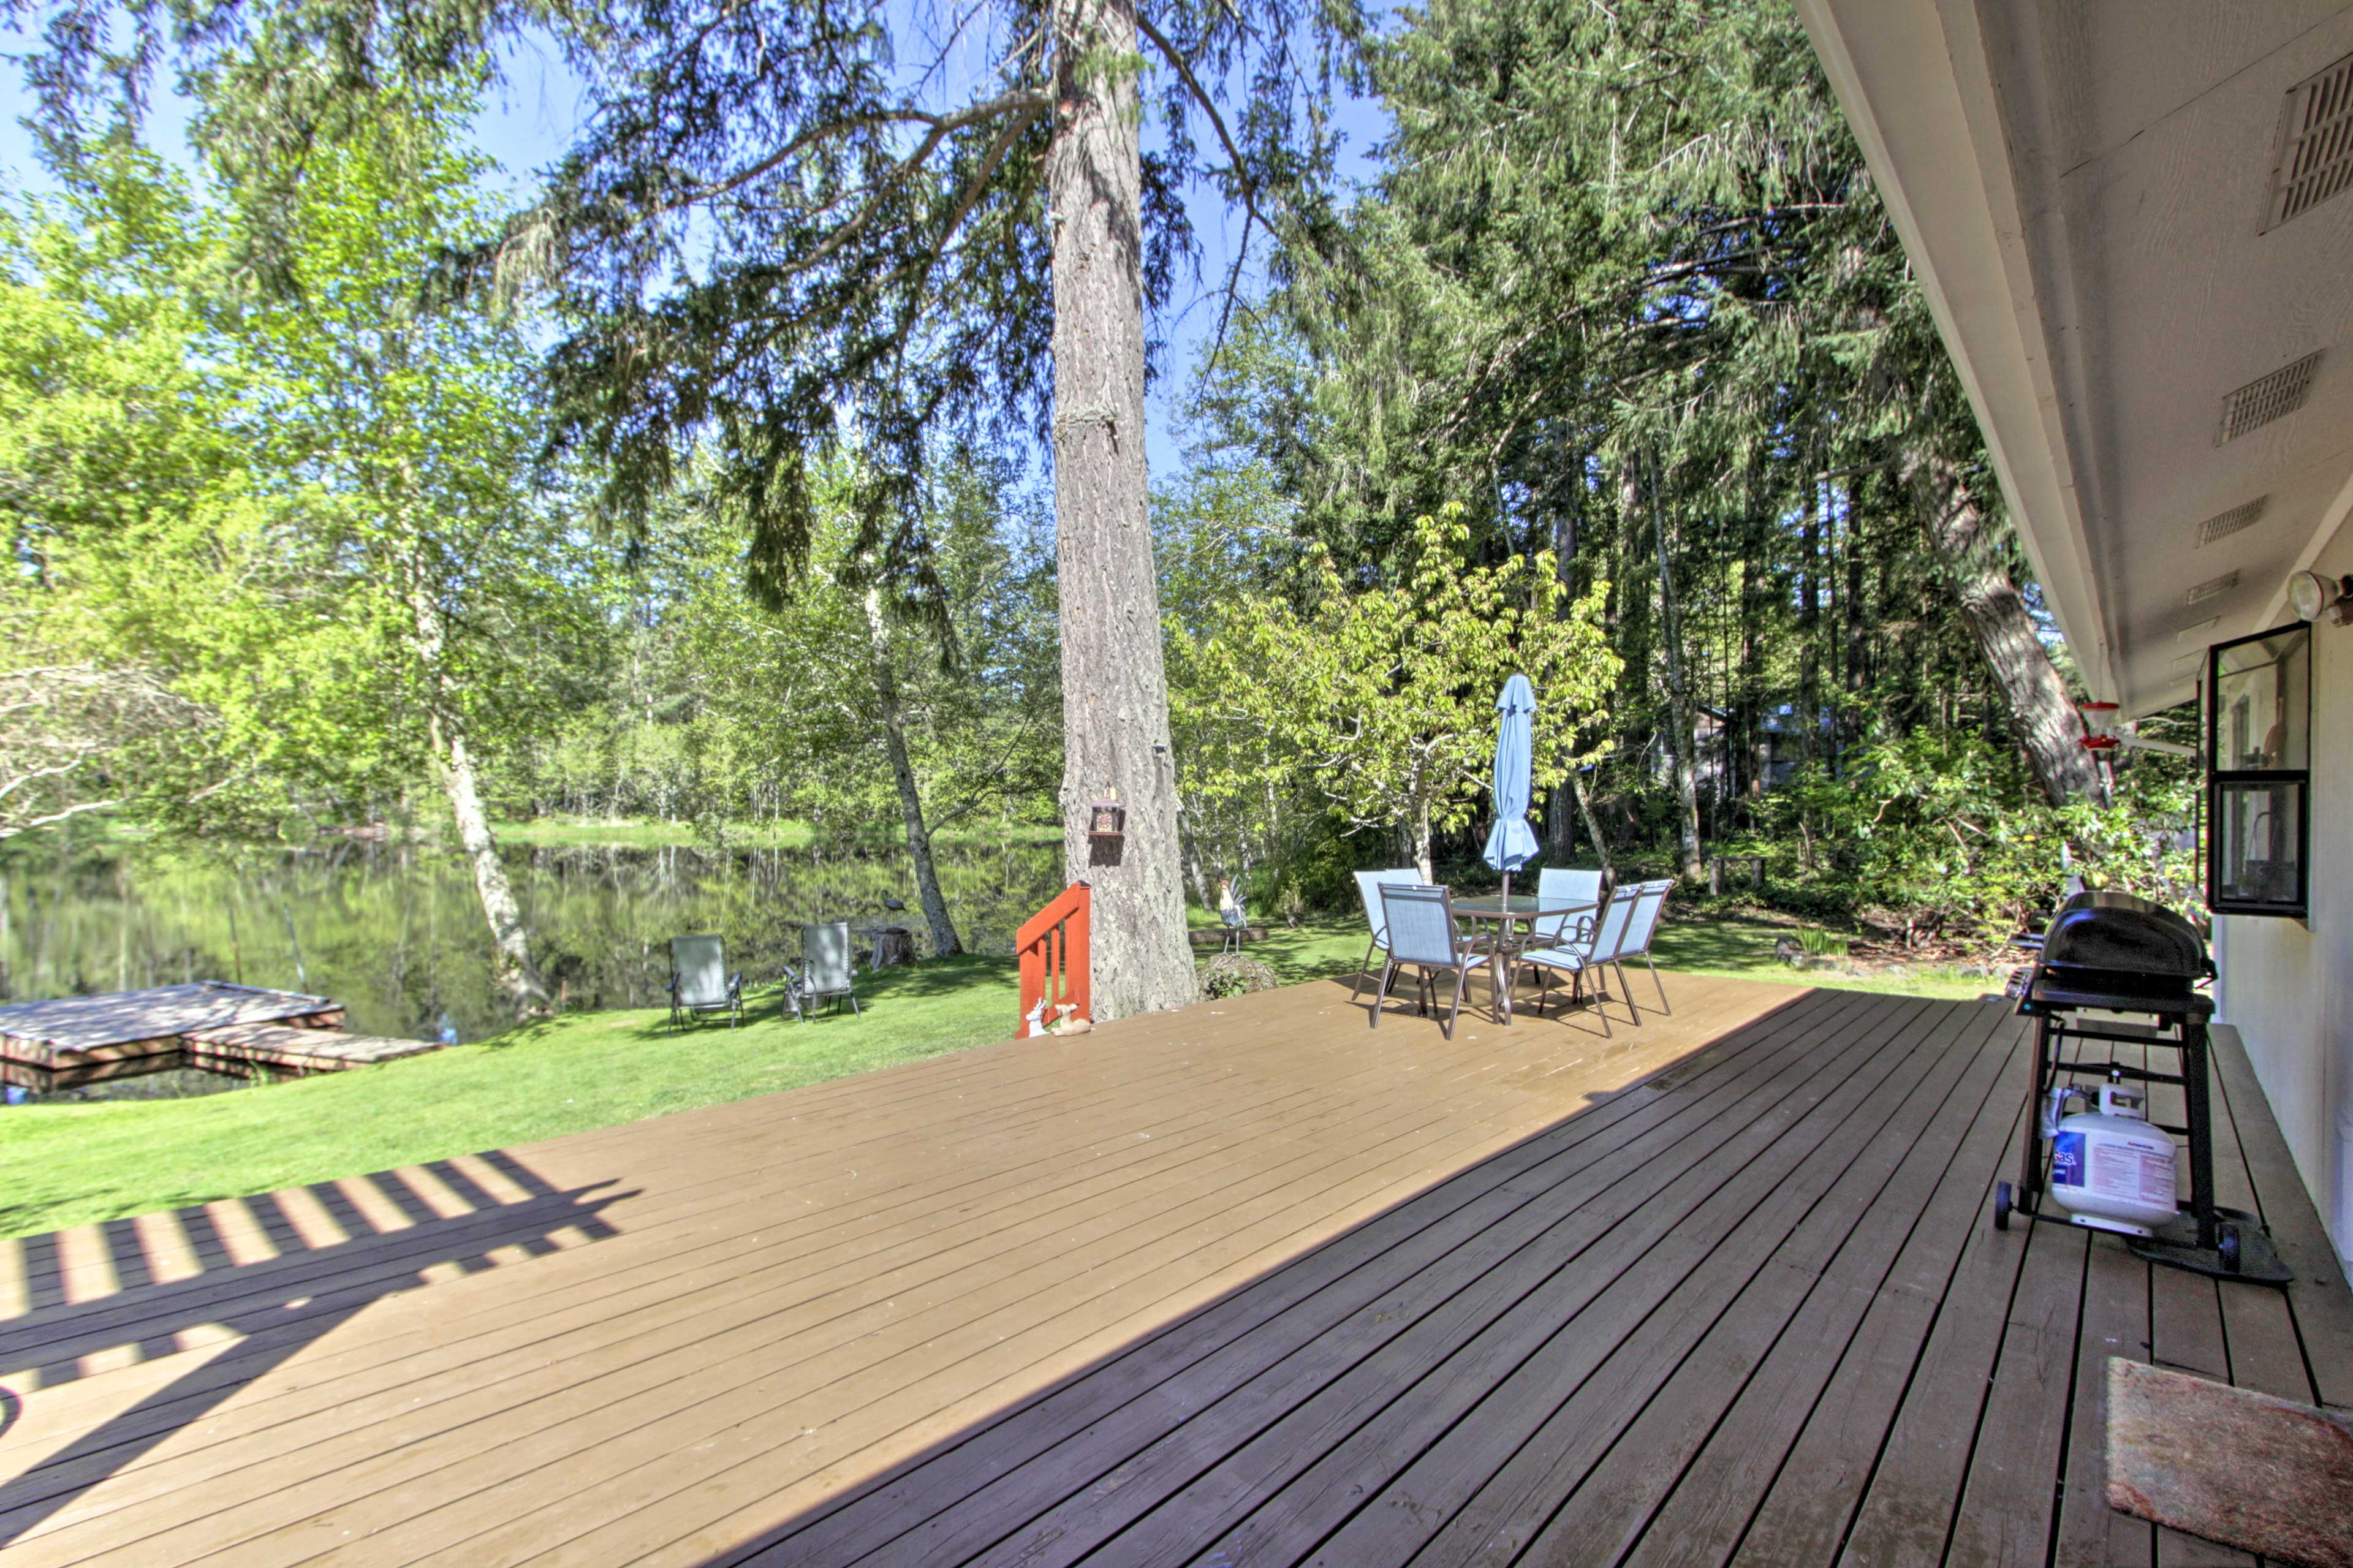 Step out onto the deck to breathe in the fresh air!